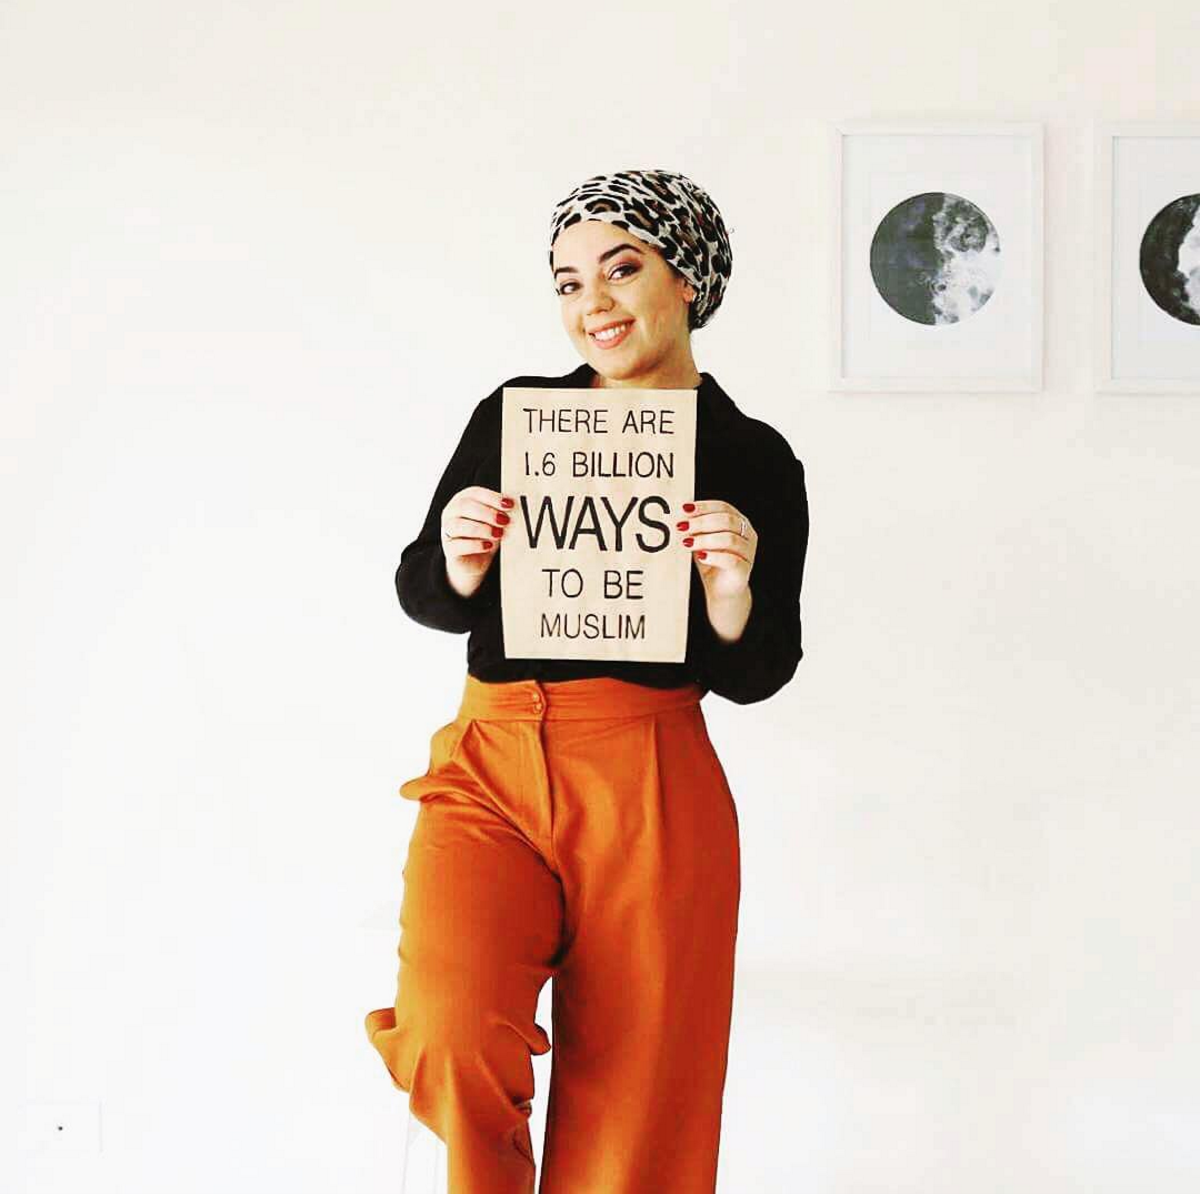 ways to be muslim - a project celebrating the diversity within the Muslim communities across the world